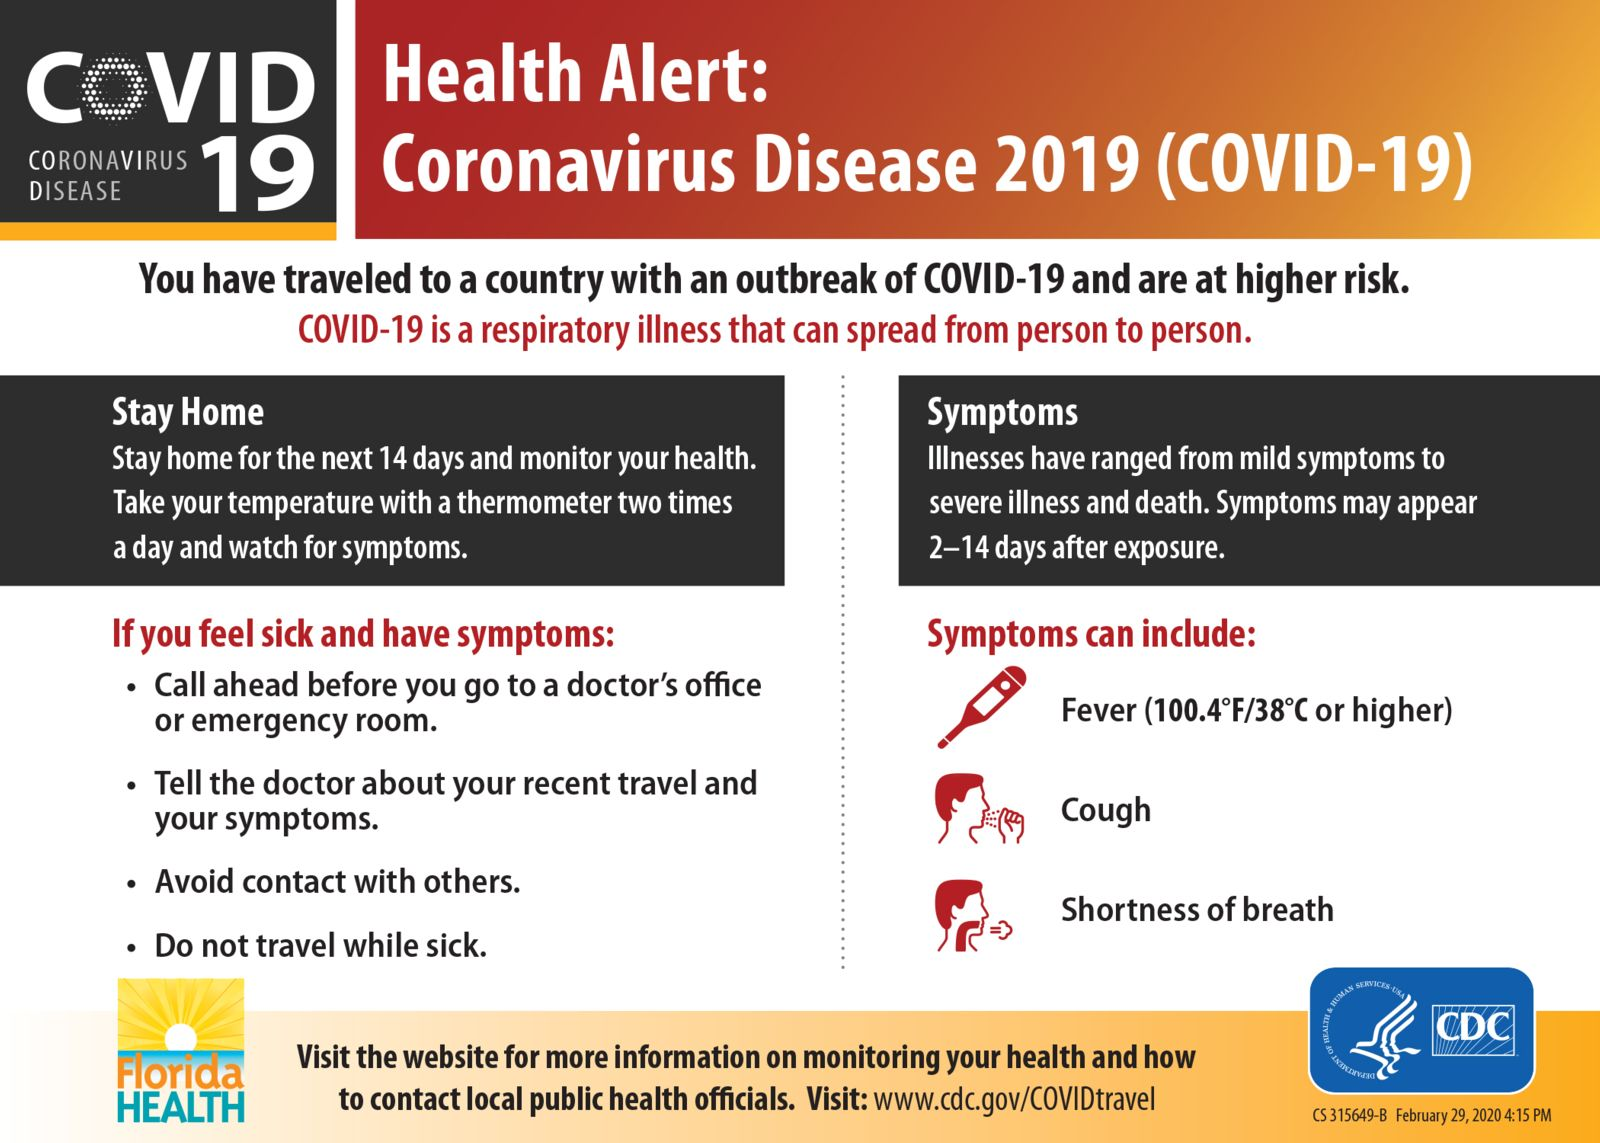 Coronavirus health alert information provided by criminal defense lawyers in florida